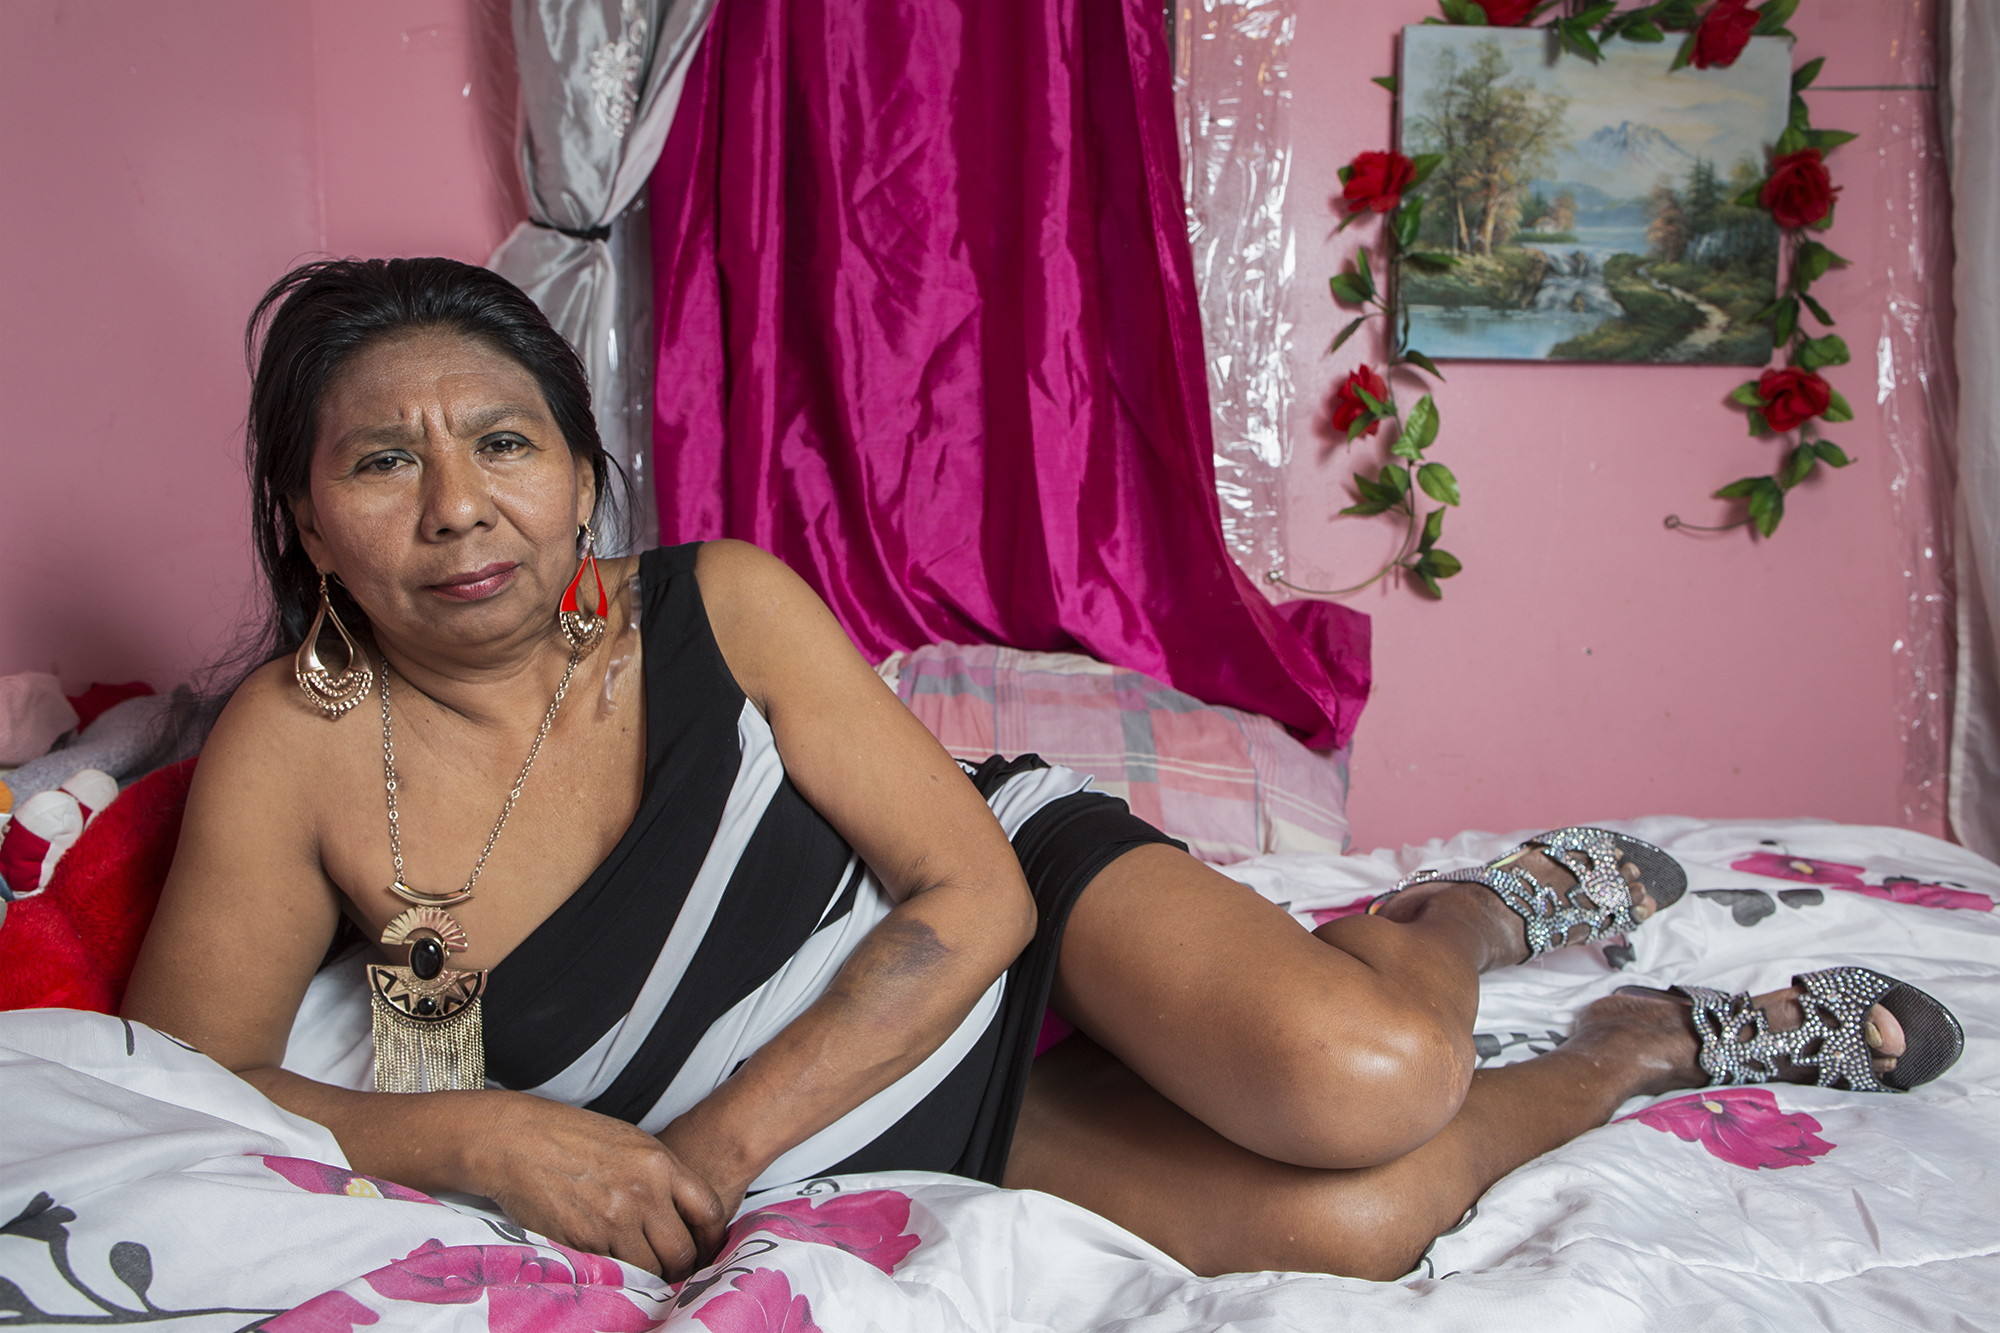 """Dionisia Martínez, in her bedroom on 45th Street in Sunset Park, Brooklyn. She is a singer and dancer of Mexican folklore. Born in Atencingo, Puebla, she has been based in New York since 2002. Since then she has worked washing dishes in restaurants, selling balloons, and cleaning, but her passion is singing. She is better known as """"Lupe Cantarrecio"""" (Lupe """"who sings out loud""""). She has a role in the documentary """"Me Voy"""" (I go) directed by the film-making collective Mu Media."""